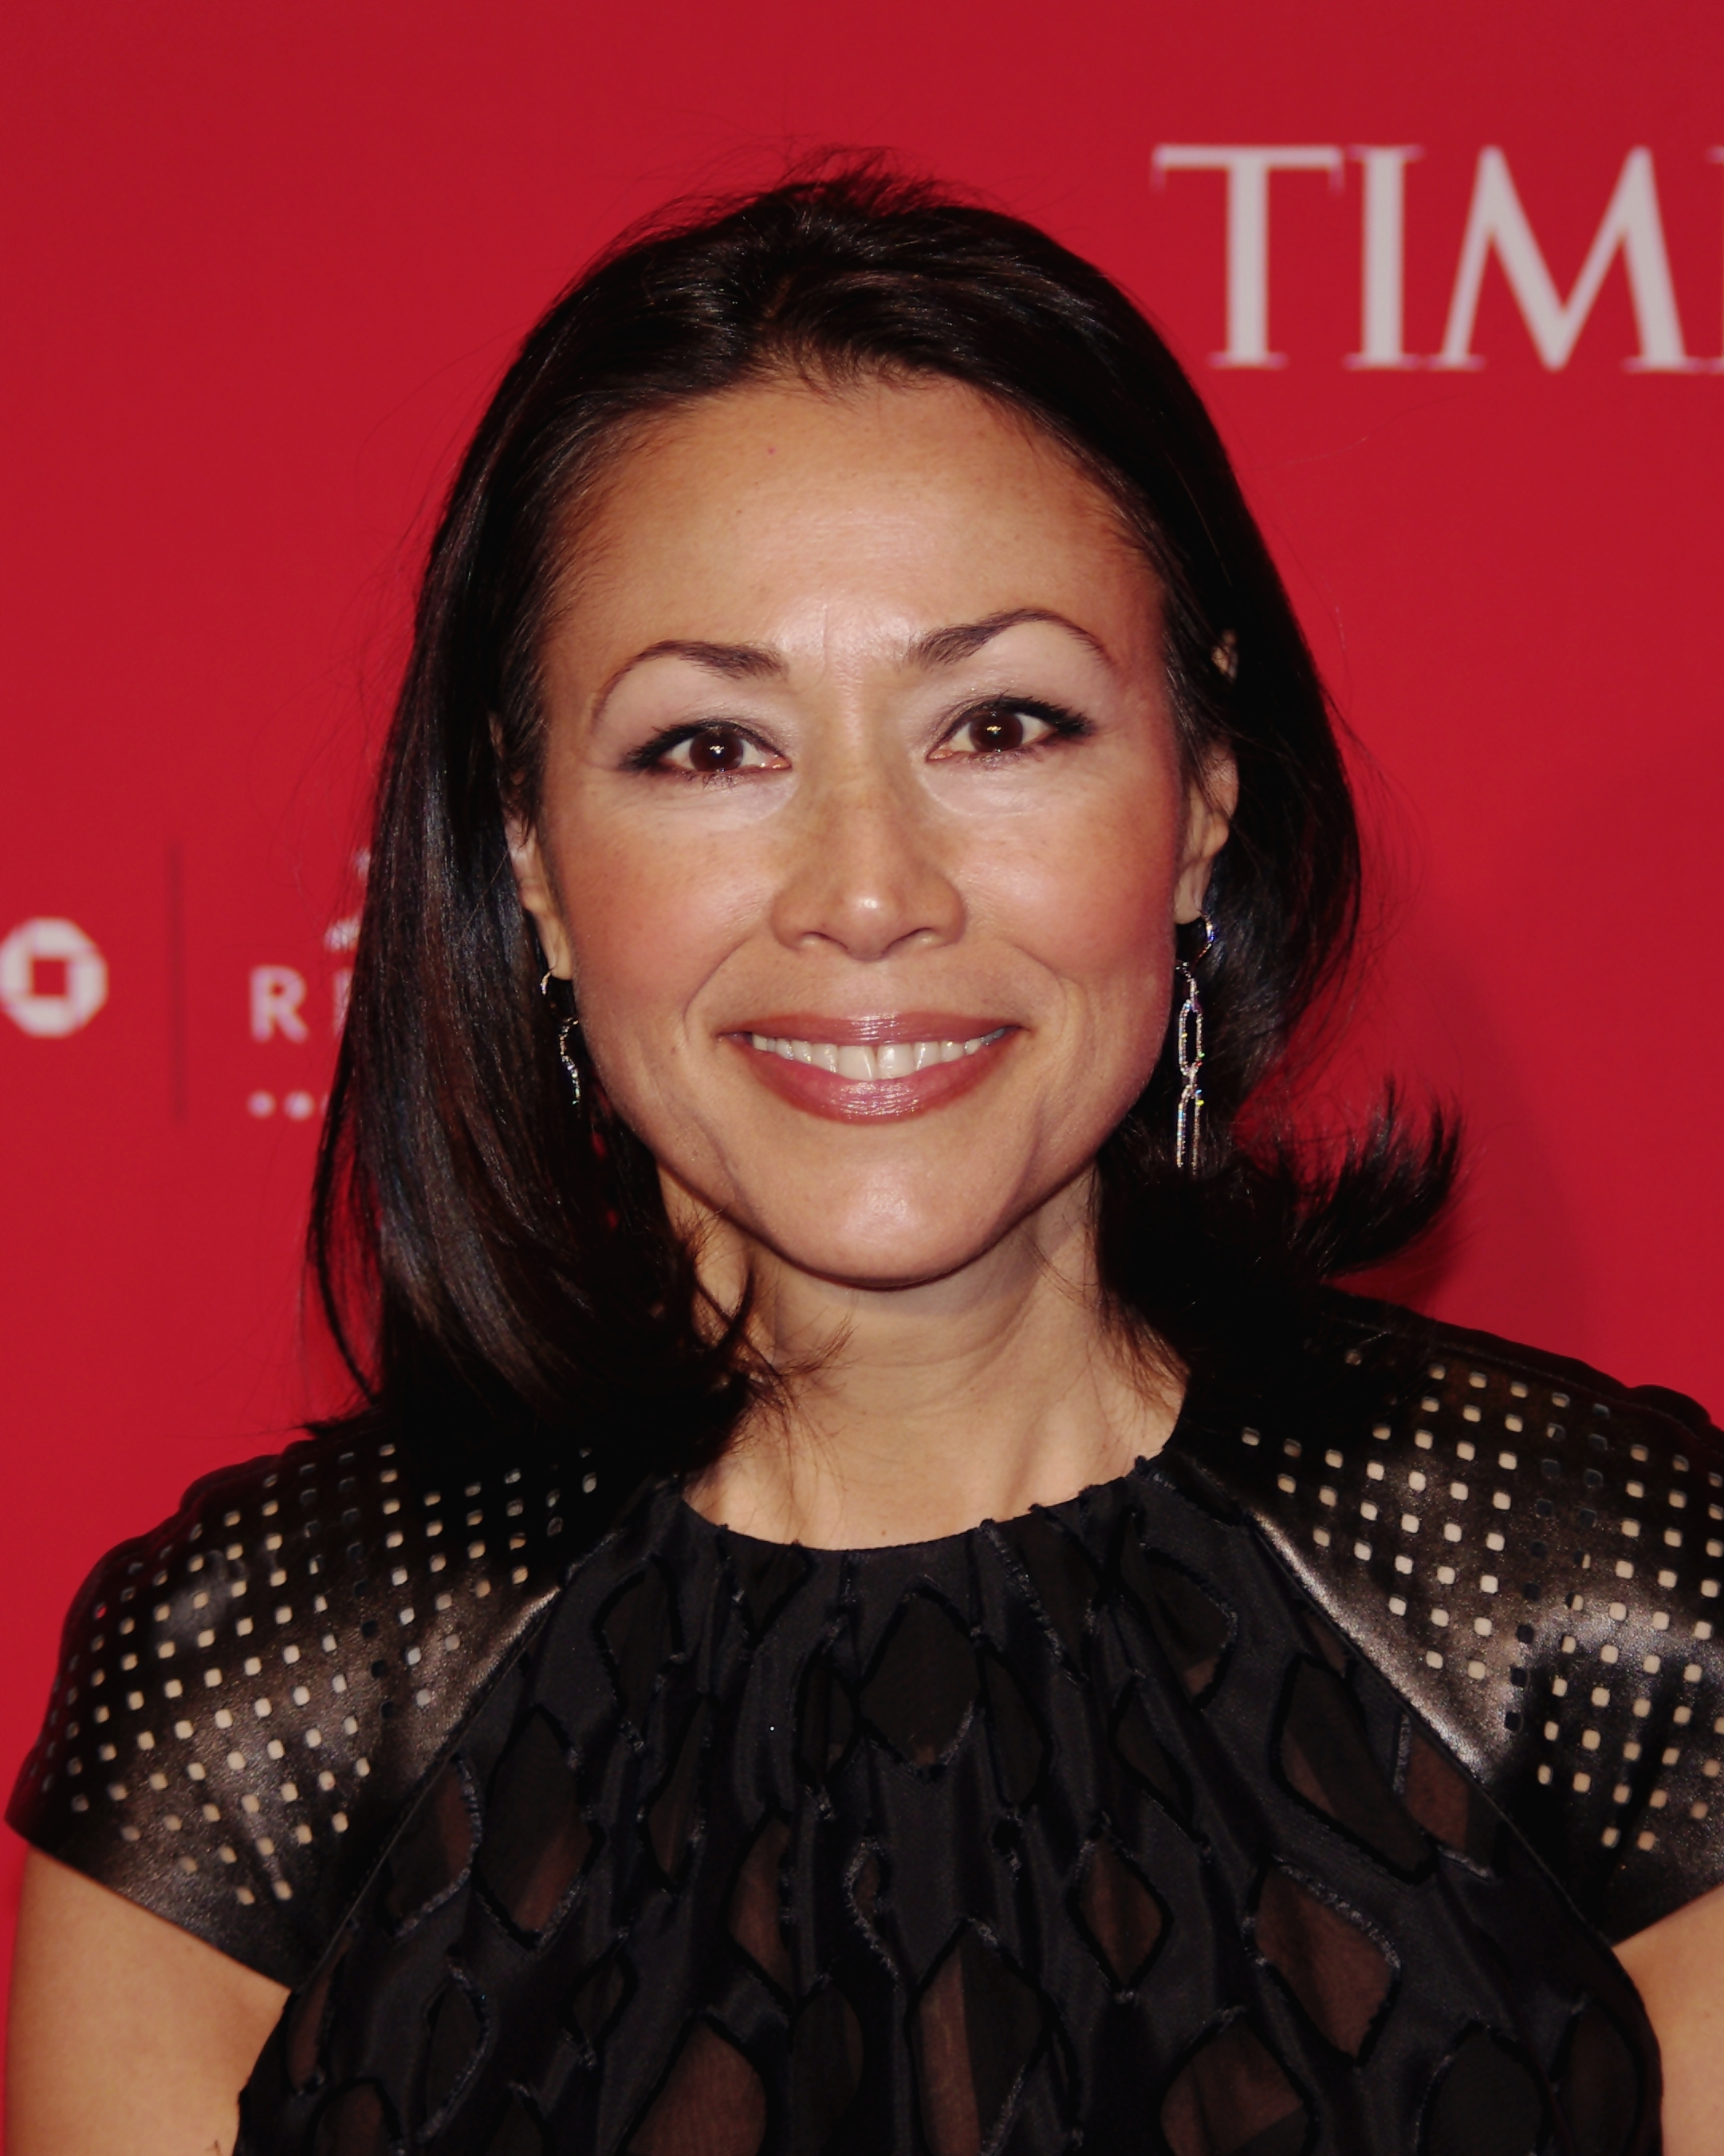 The 61-year old daughter of father Bob Curry and mother Hiroe Nagase Ann Curry in 2018 photo. Ann Curry earned a  million dollar salary - leaving the net worth at 10 million in 2018